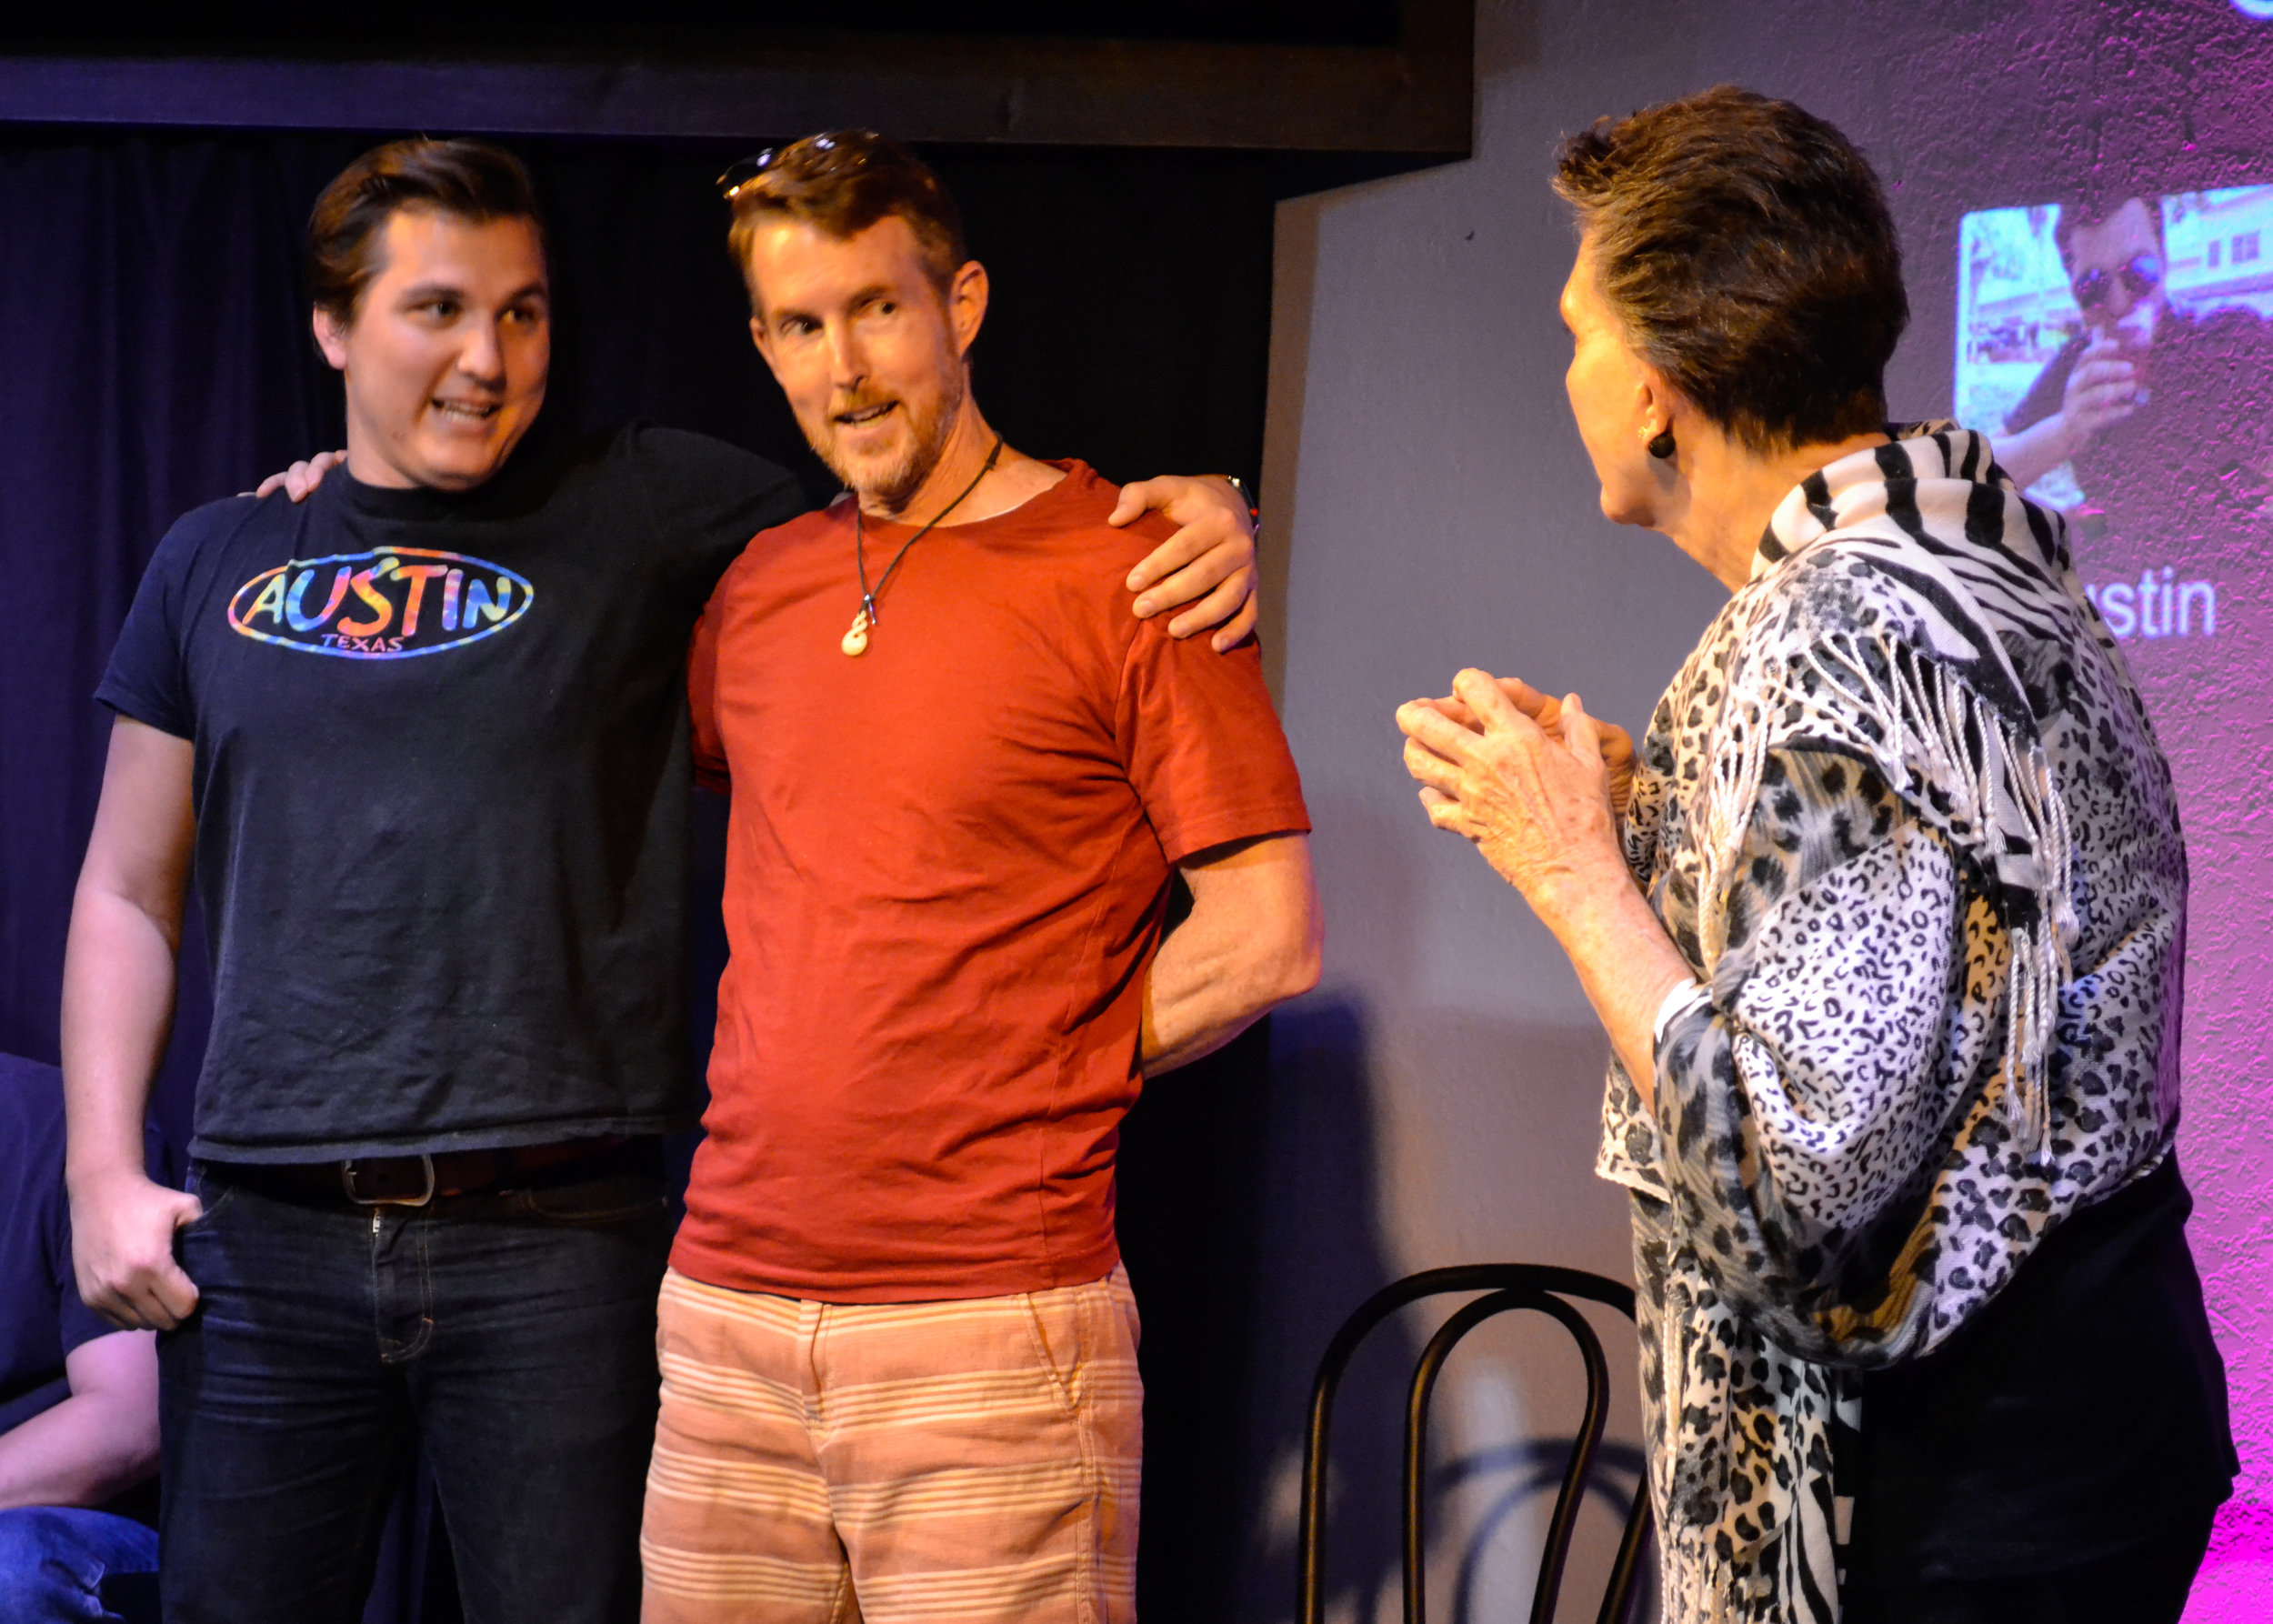 Austin Culp performing with Doug Harwood and Tricia Christen-Rivas in Whose Line St Pete.